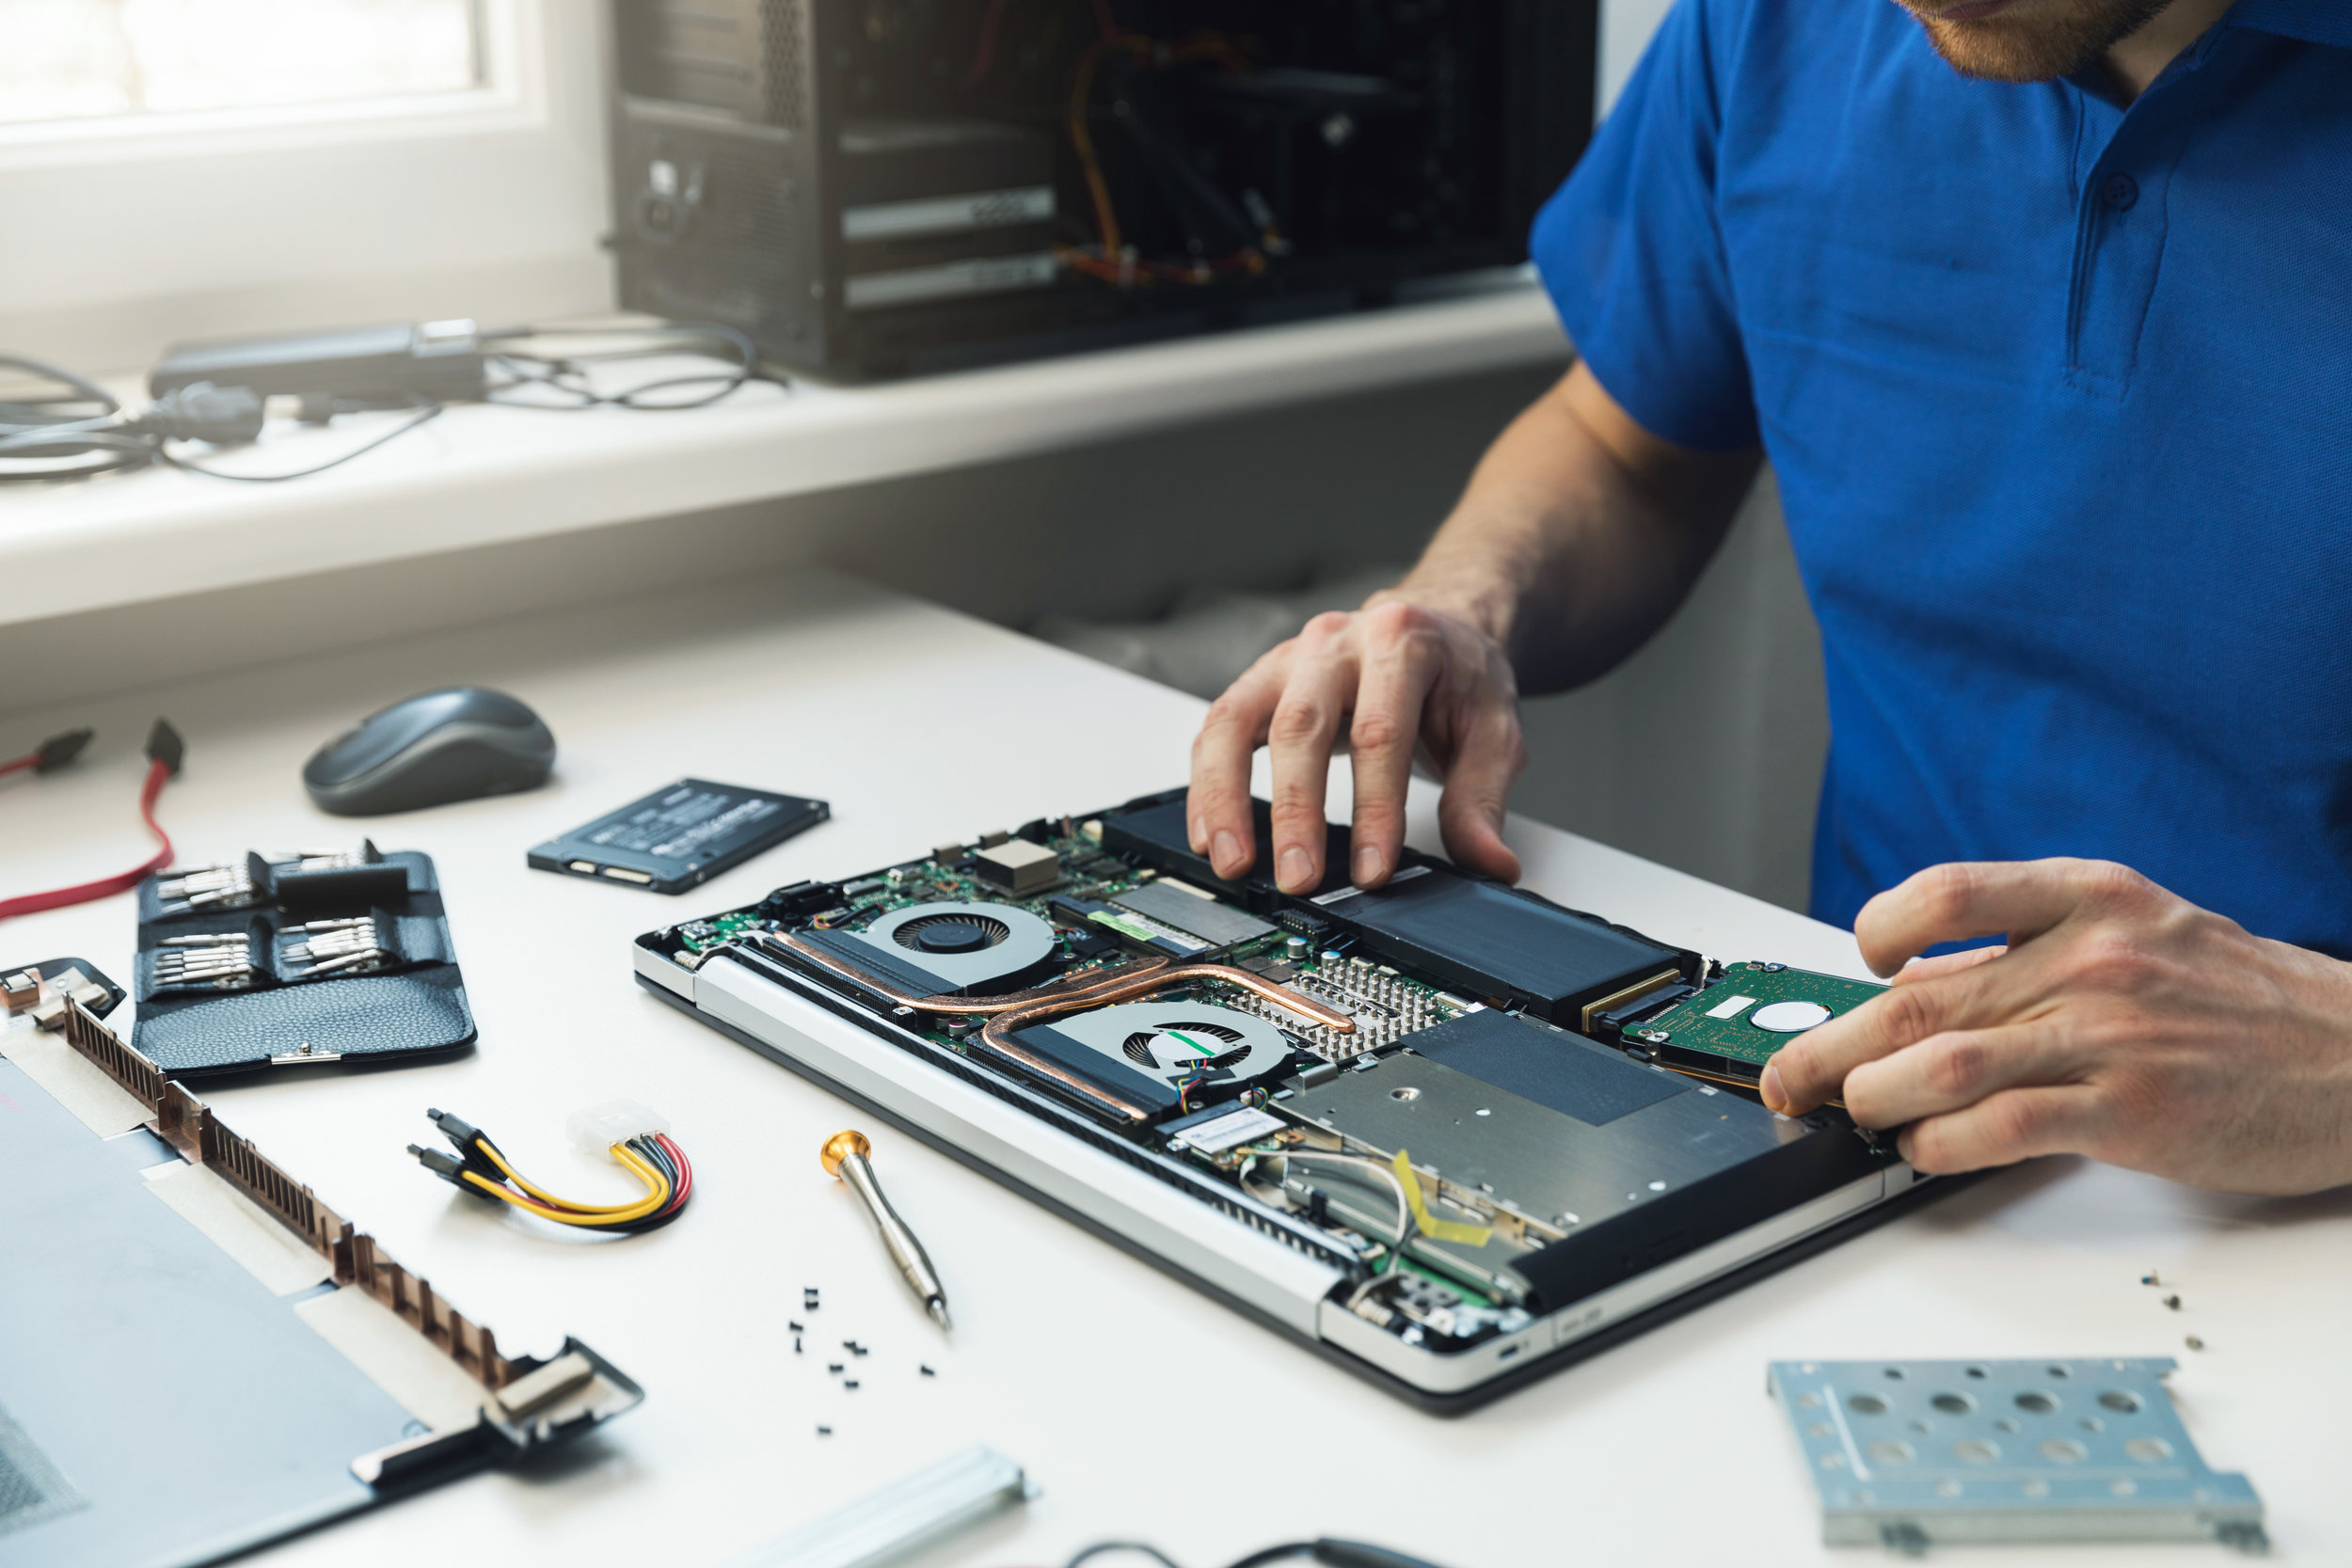 In-Shop Tech Support - You Bring It To Us, We Fix it QuickOur Lowest Rates & Fast TurnaroundPC, Notebook & Server RepairVirus & Spyware RemovalData RecoveryComponent Upgrades